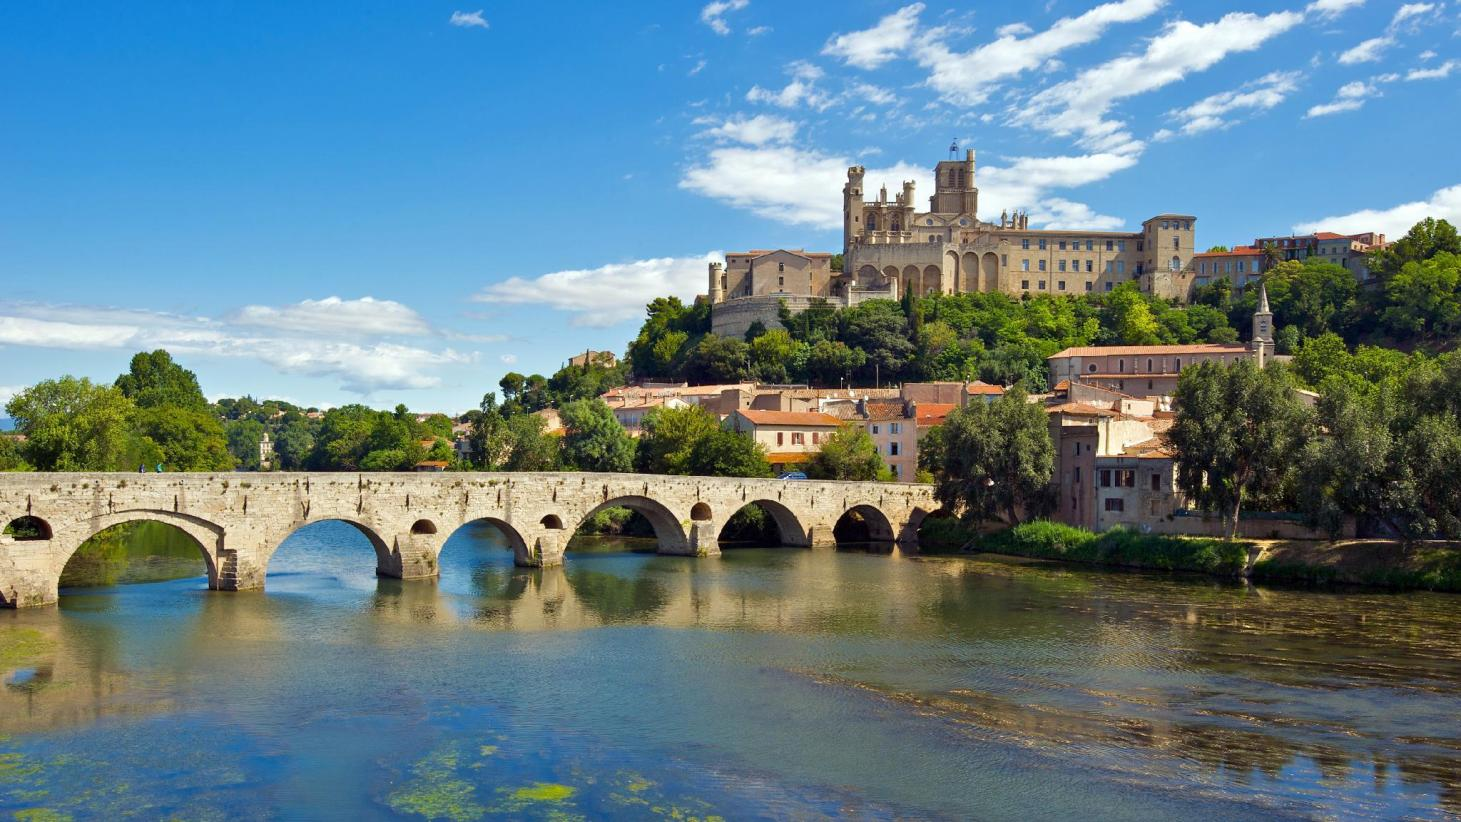 In And Out Beziers 10 best beziers hotels: hd photos + reviews of hotels in